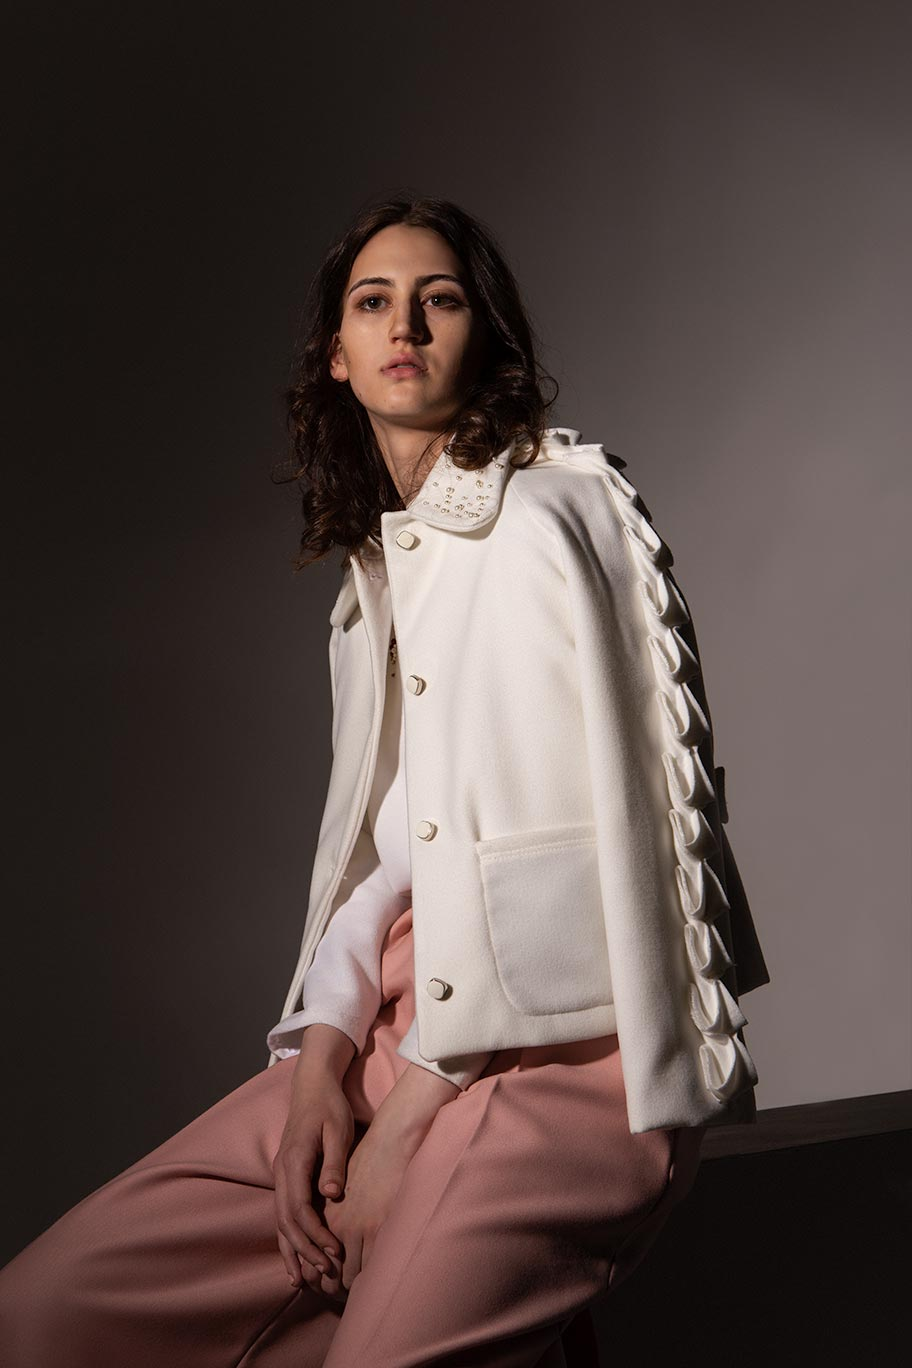 VALDONE Au - Editorial image of British white wool Alia couture coat. Made-to-measure garment made in the UK.